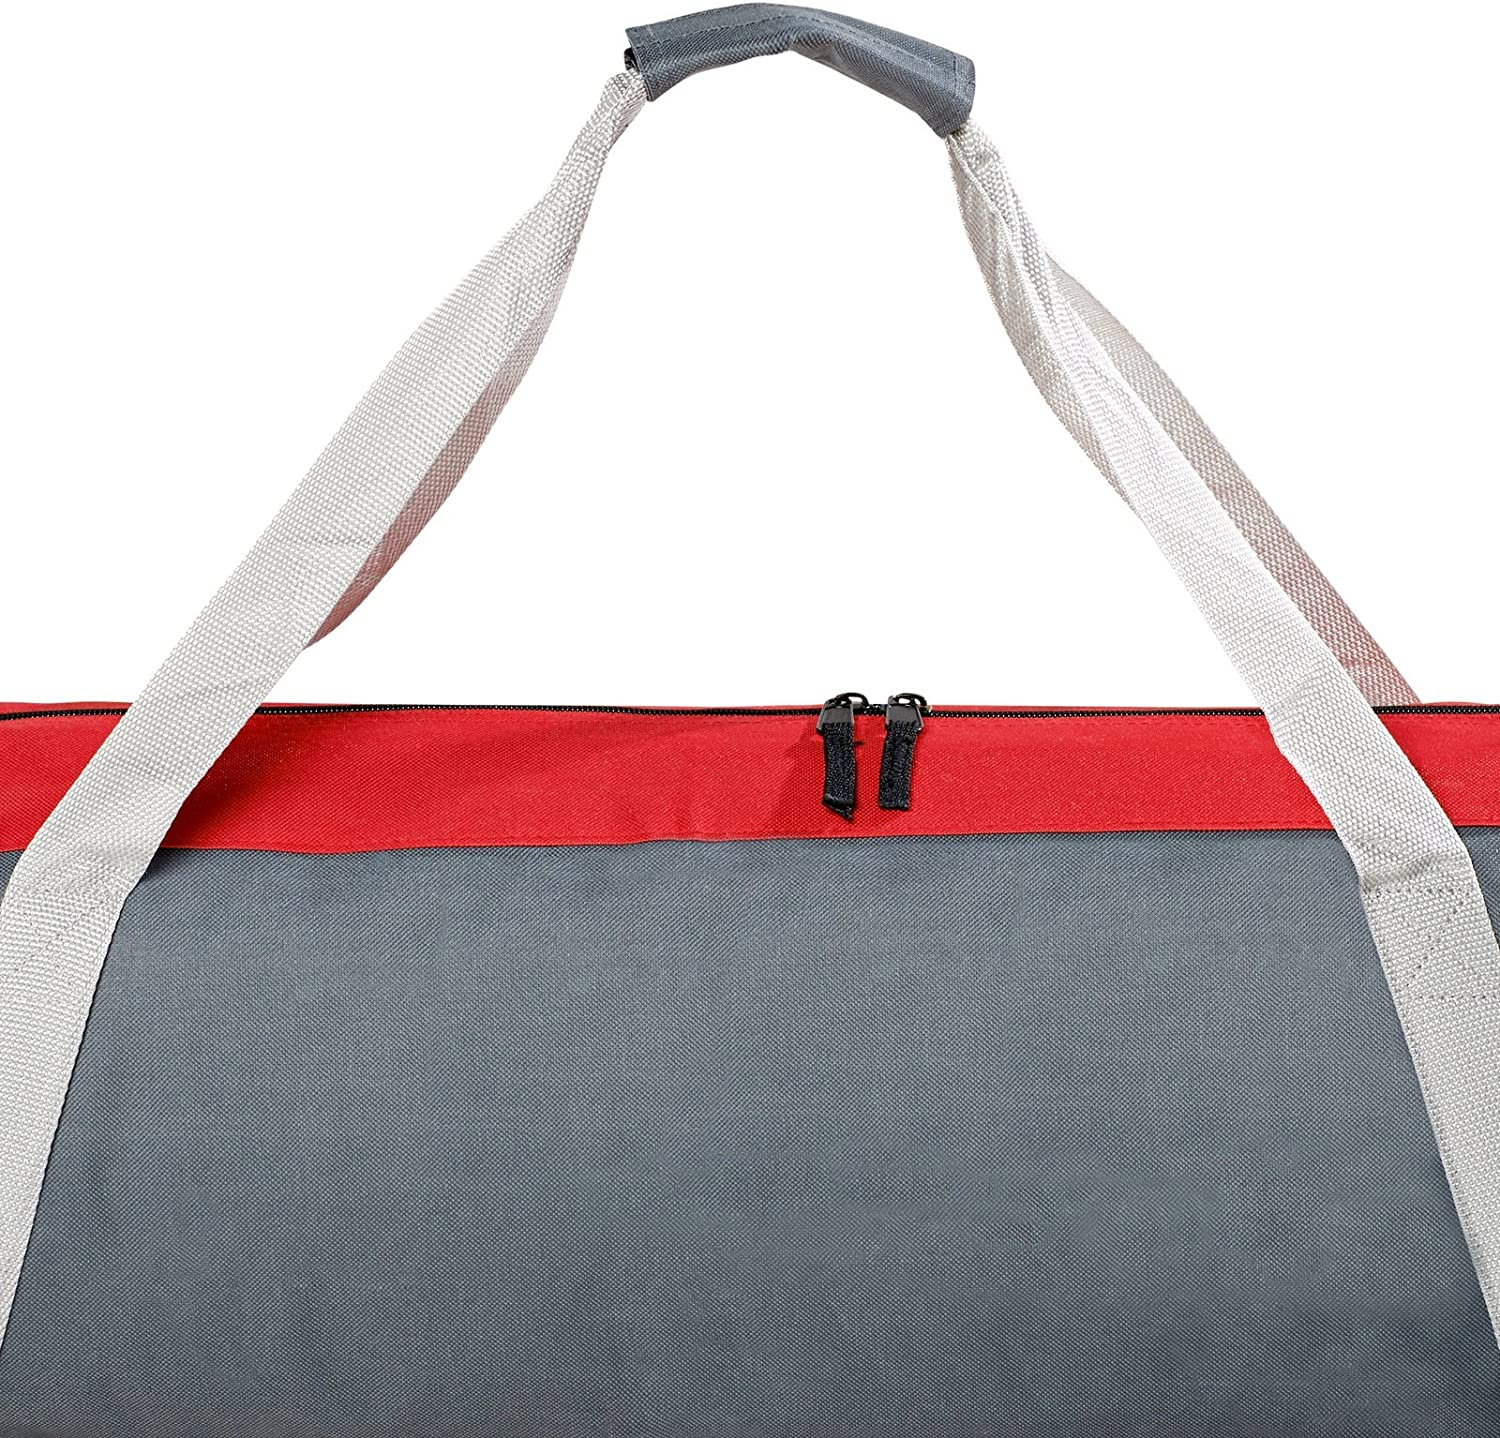 43 x 27 x 5 cm Unisex Black Crevice Ski Bag Set red//grey BCR151006